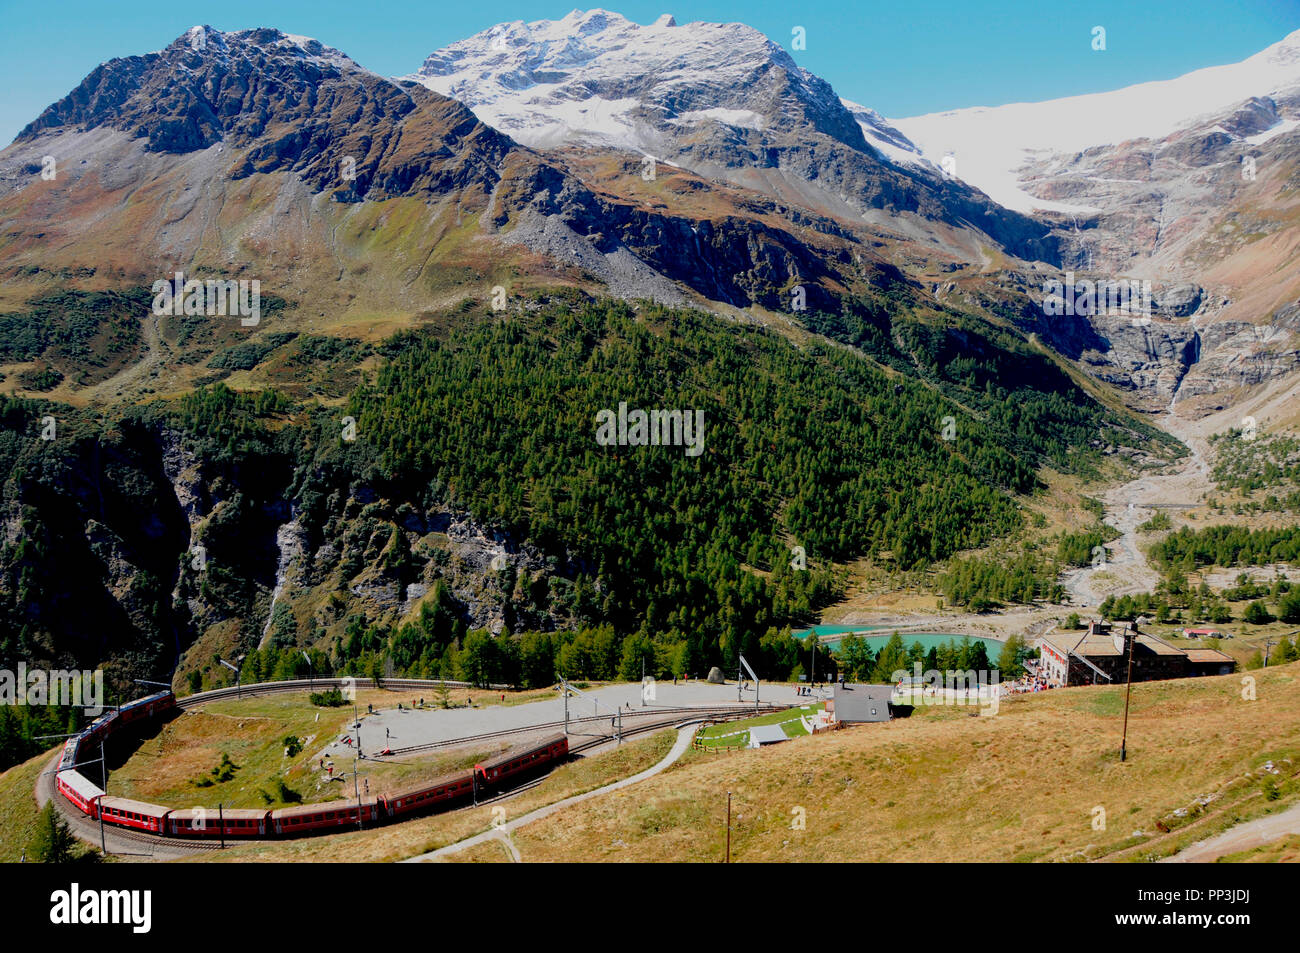 Swiss alps: The train trip from Posciavo in Italy to Bernina-Hospitz in the upper Engadin in canton Graubünden is a tourist hot spot - Stock Image